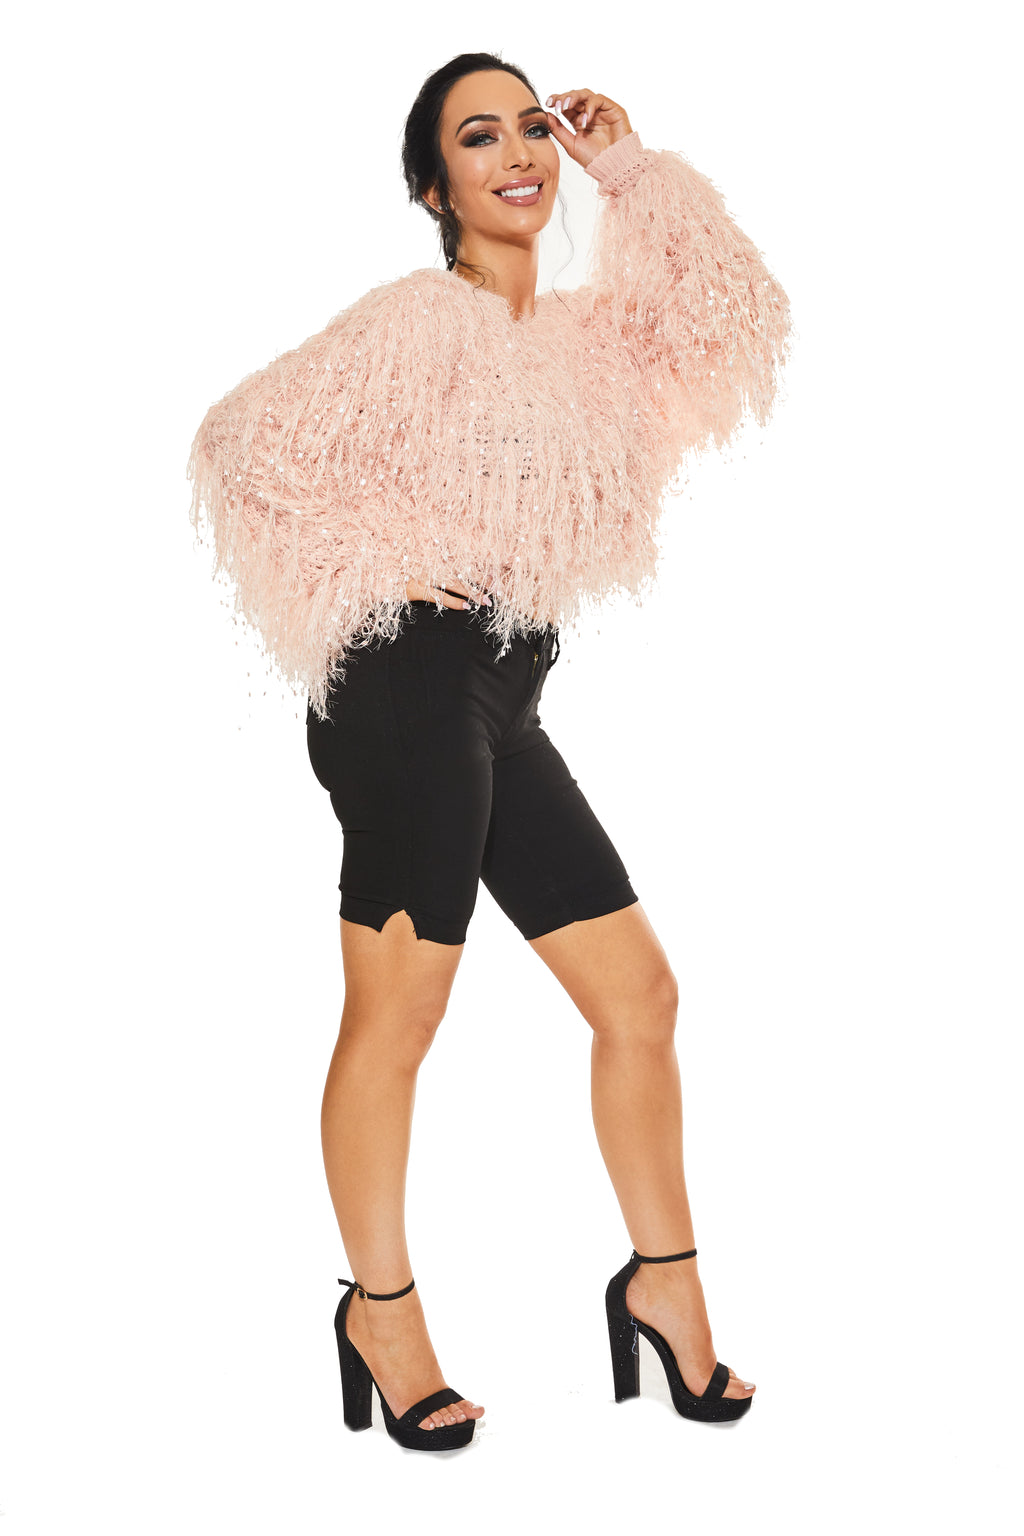 EVERYONE LOVES A FLUFFY JUMPER - www.prettyboutique.com